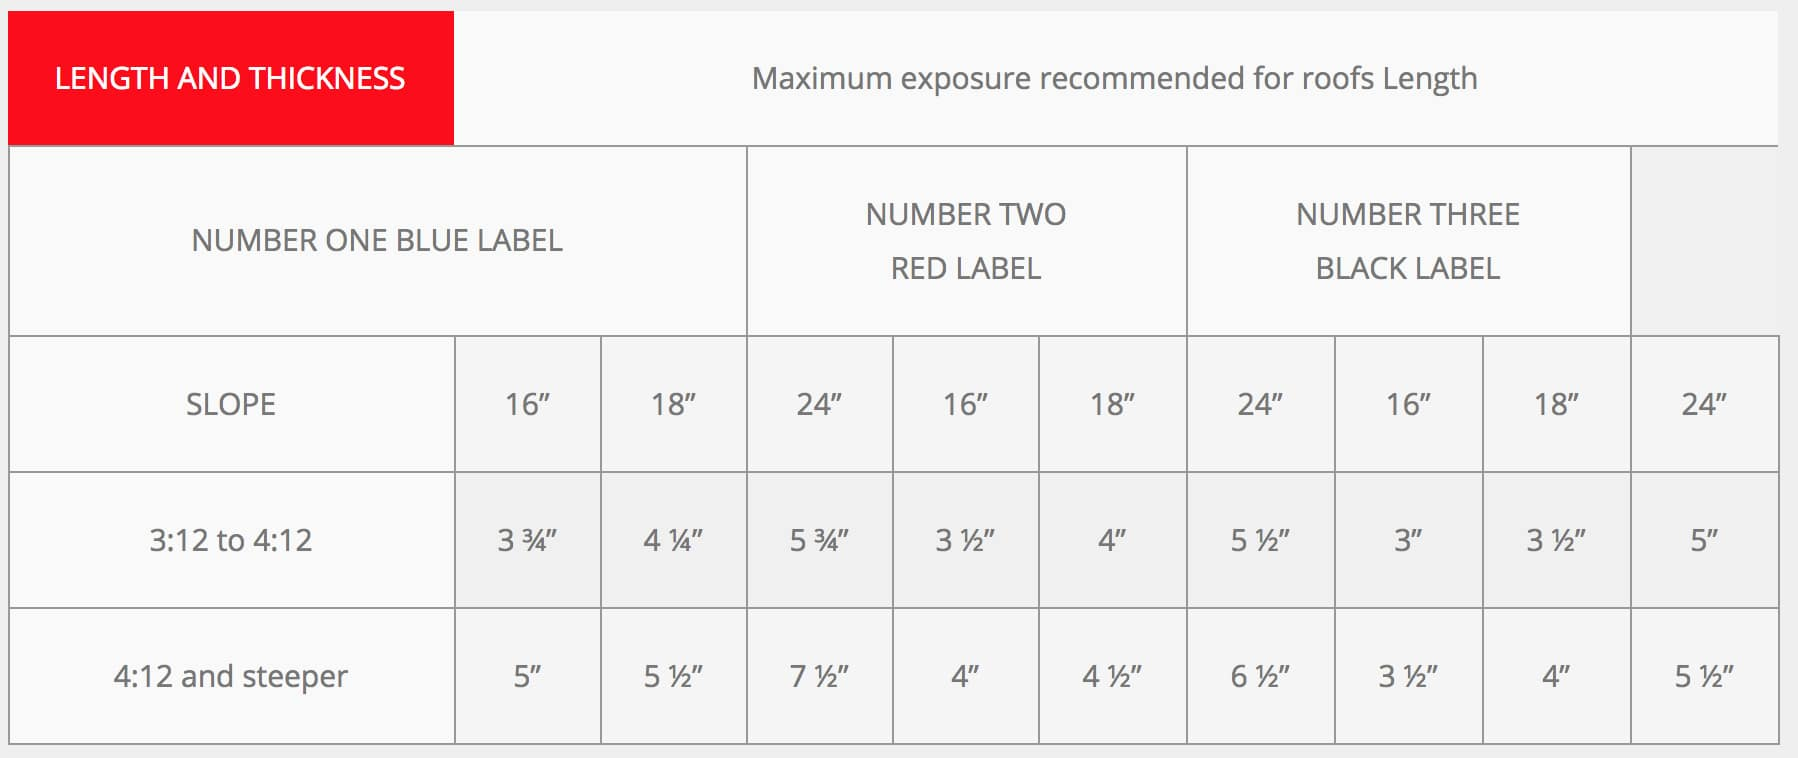 ROOF EXPOSURE TABLES